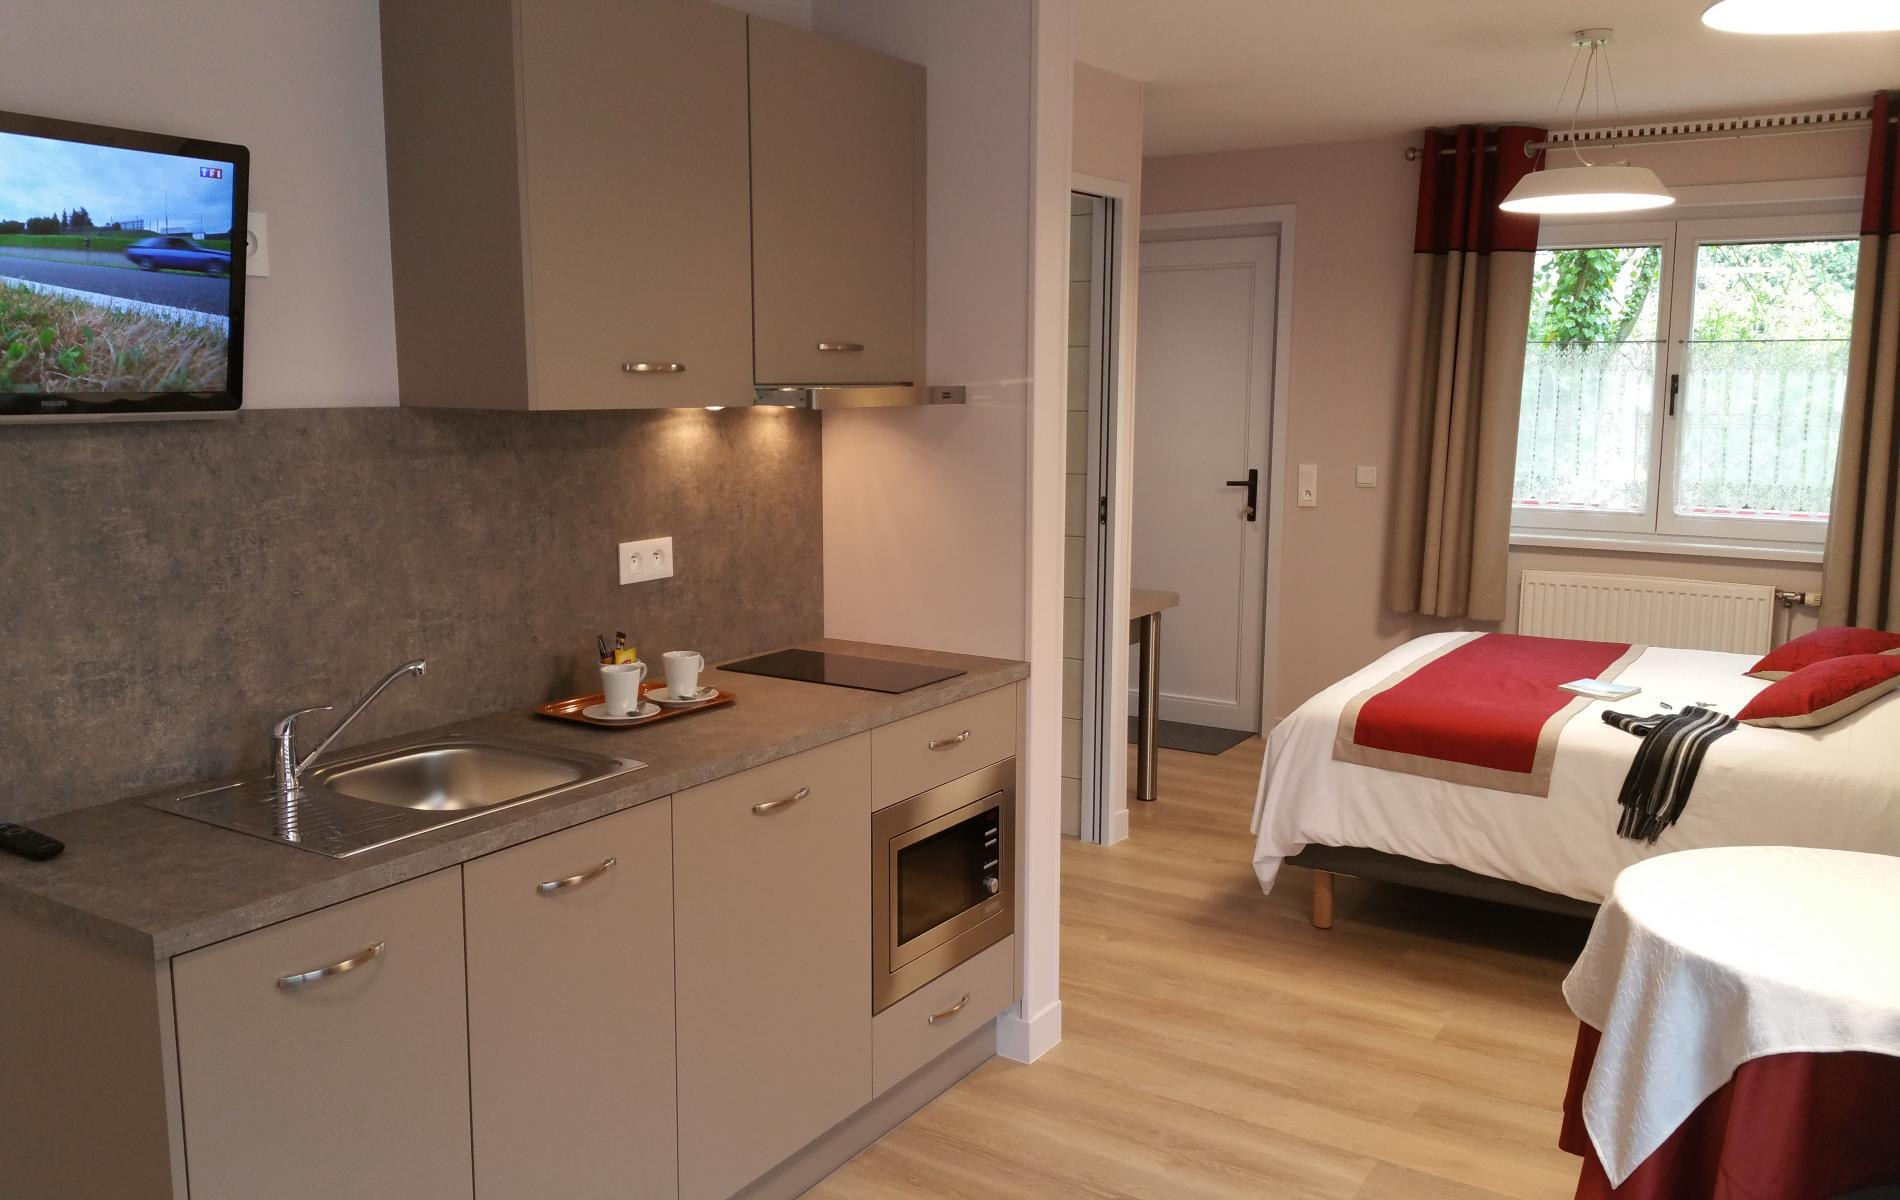 New in Saint-Omer, discover the rental Appart Hotel, Studio, Gîte